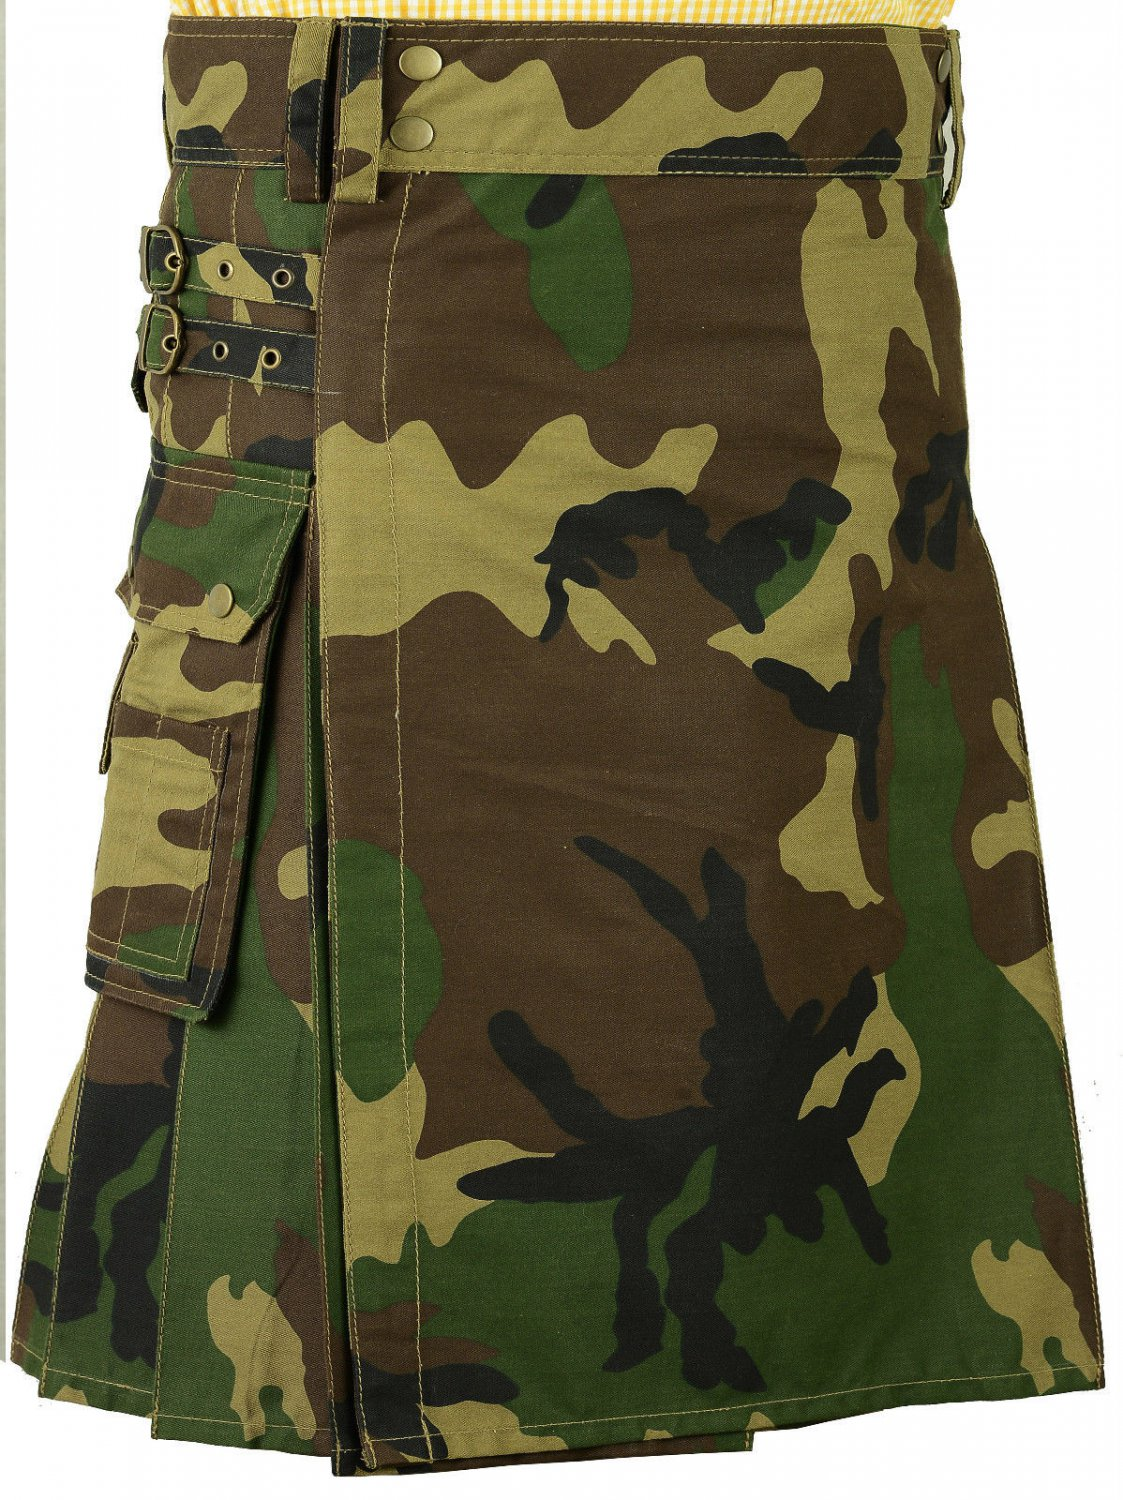 Size 36 Army Camo Utility Cotton Kilt  with Big Pockets